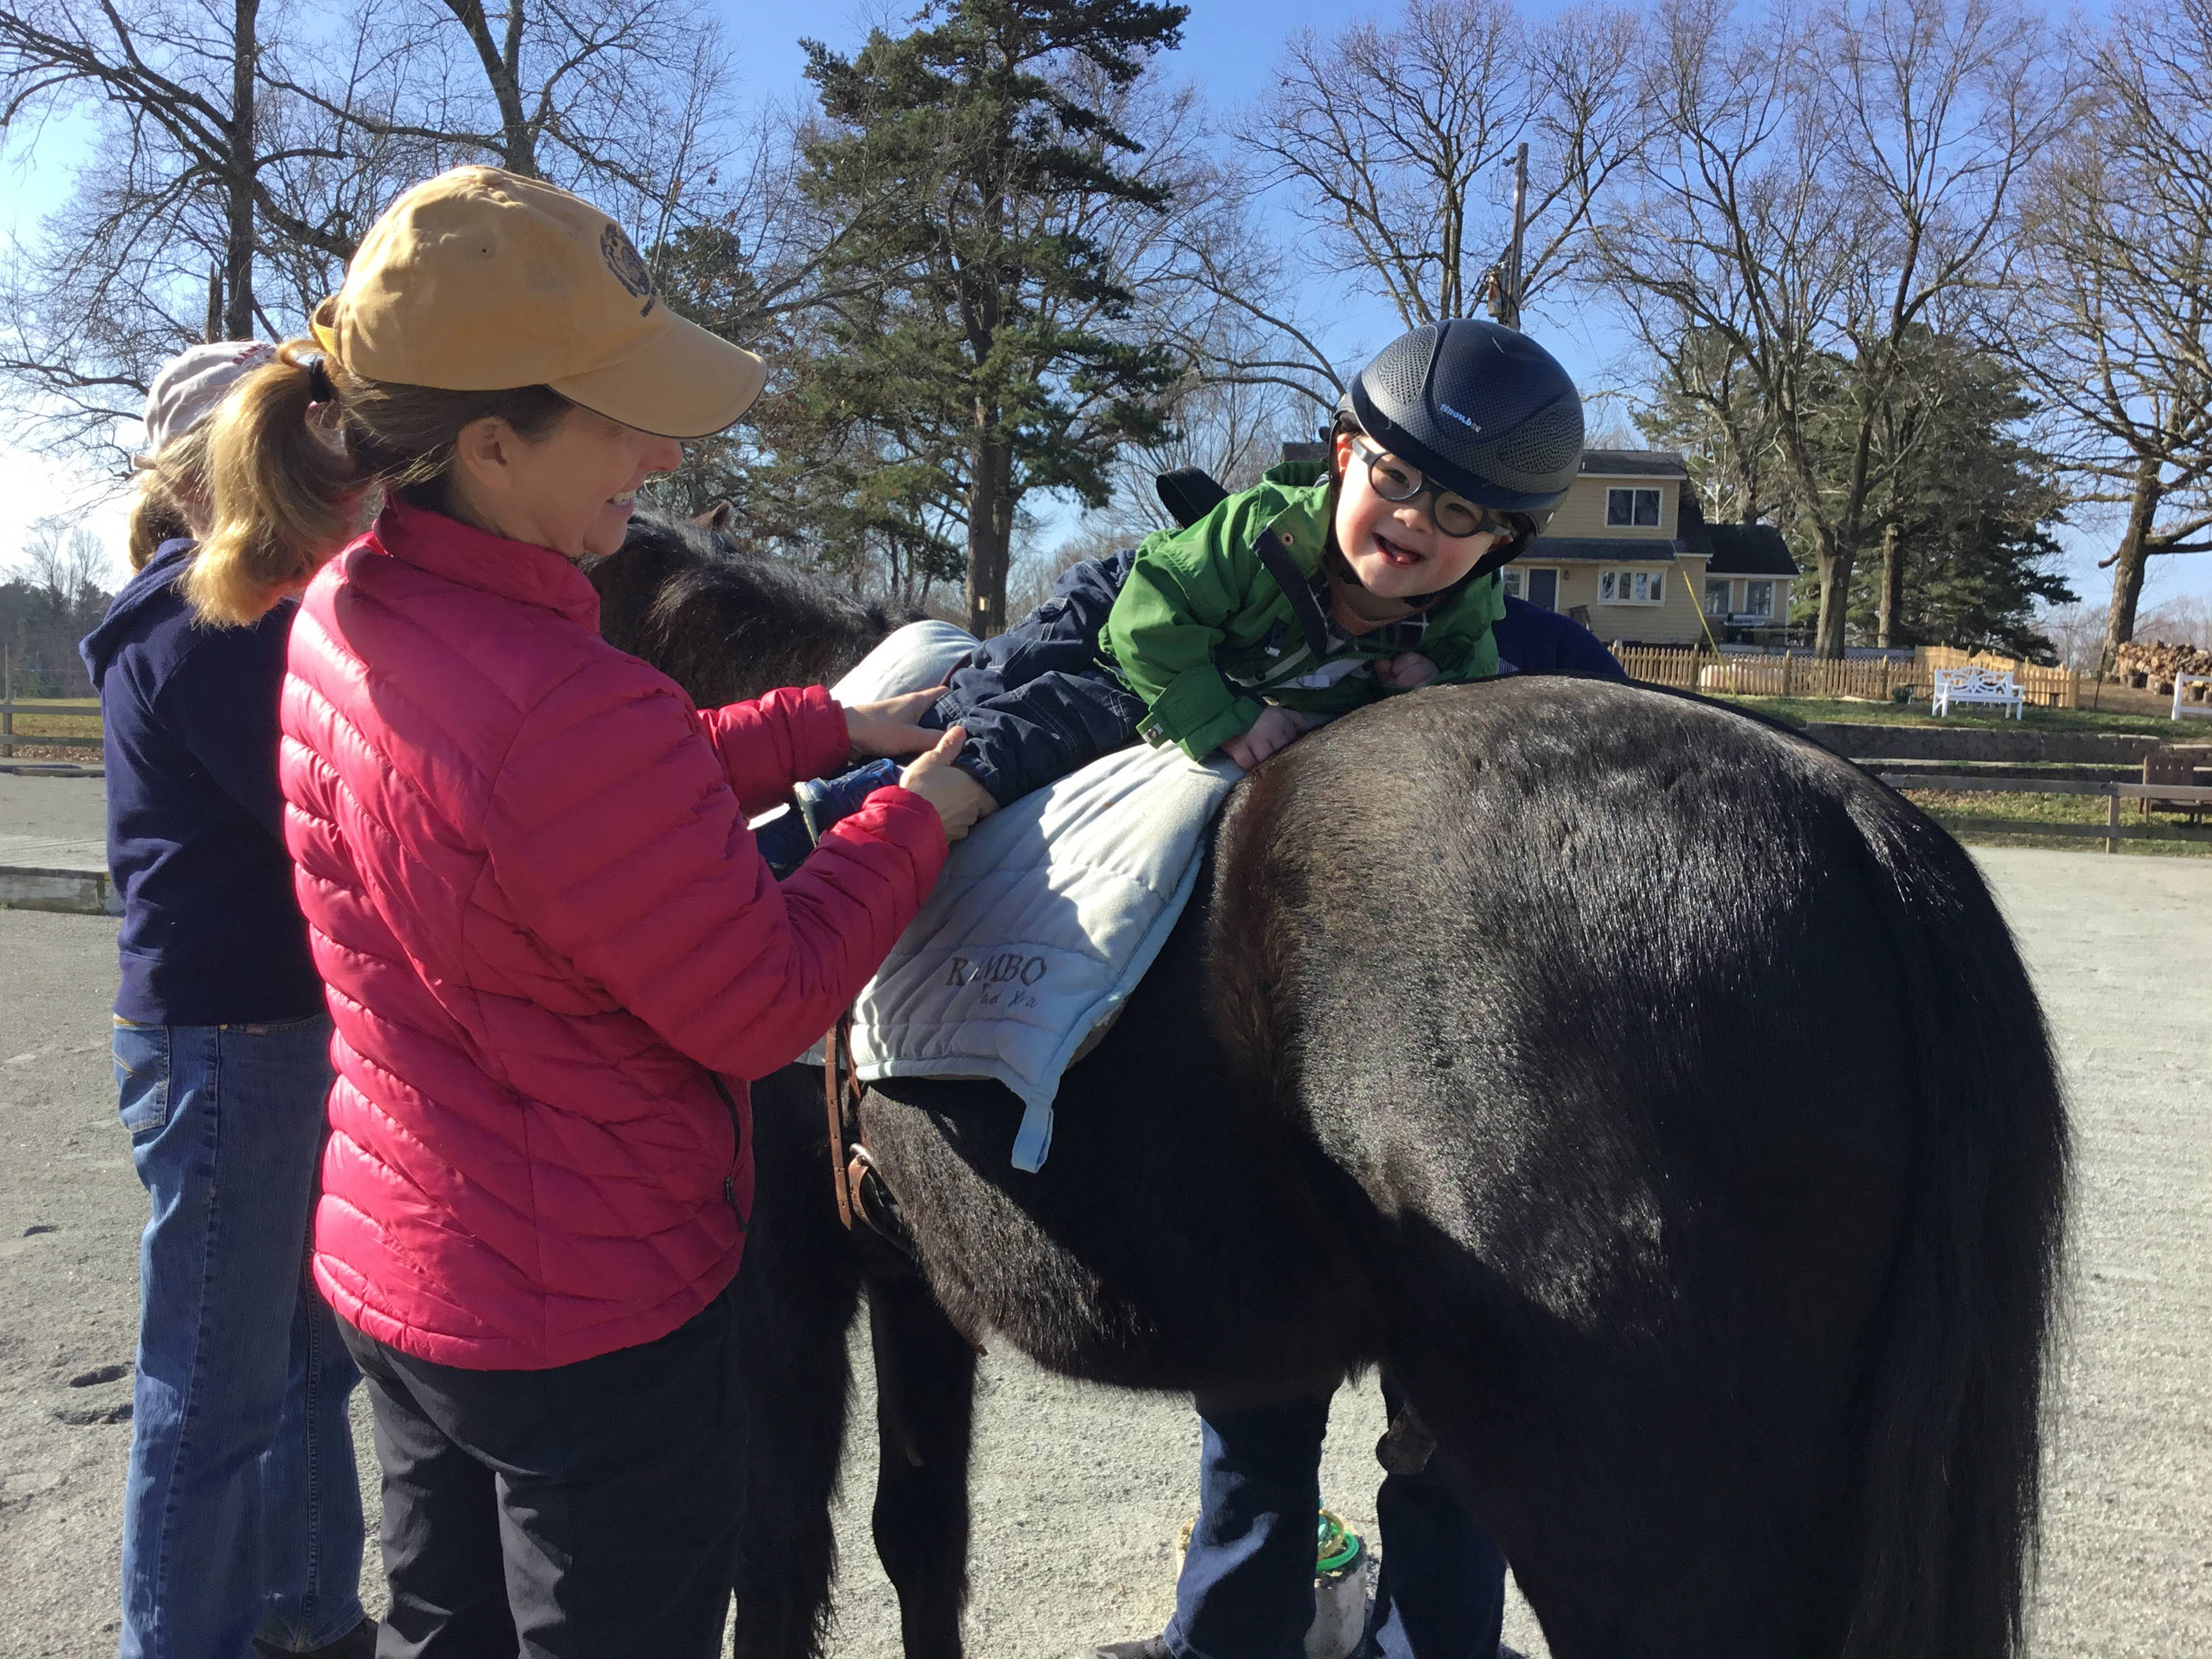 Patient receiving hippotherapy at Shining Hope Farms